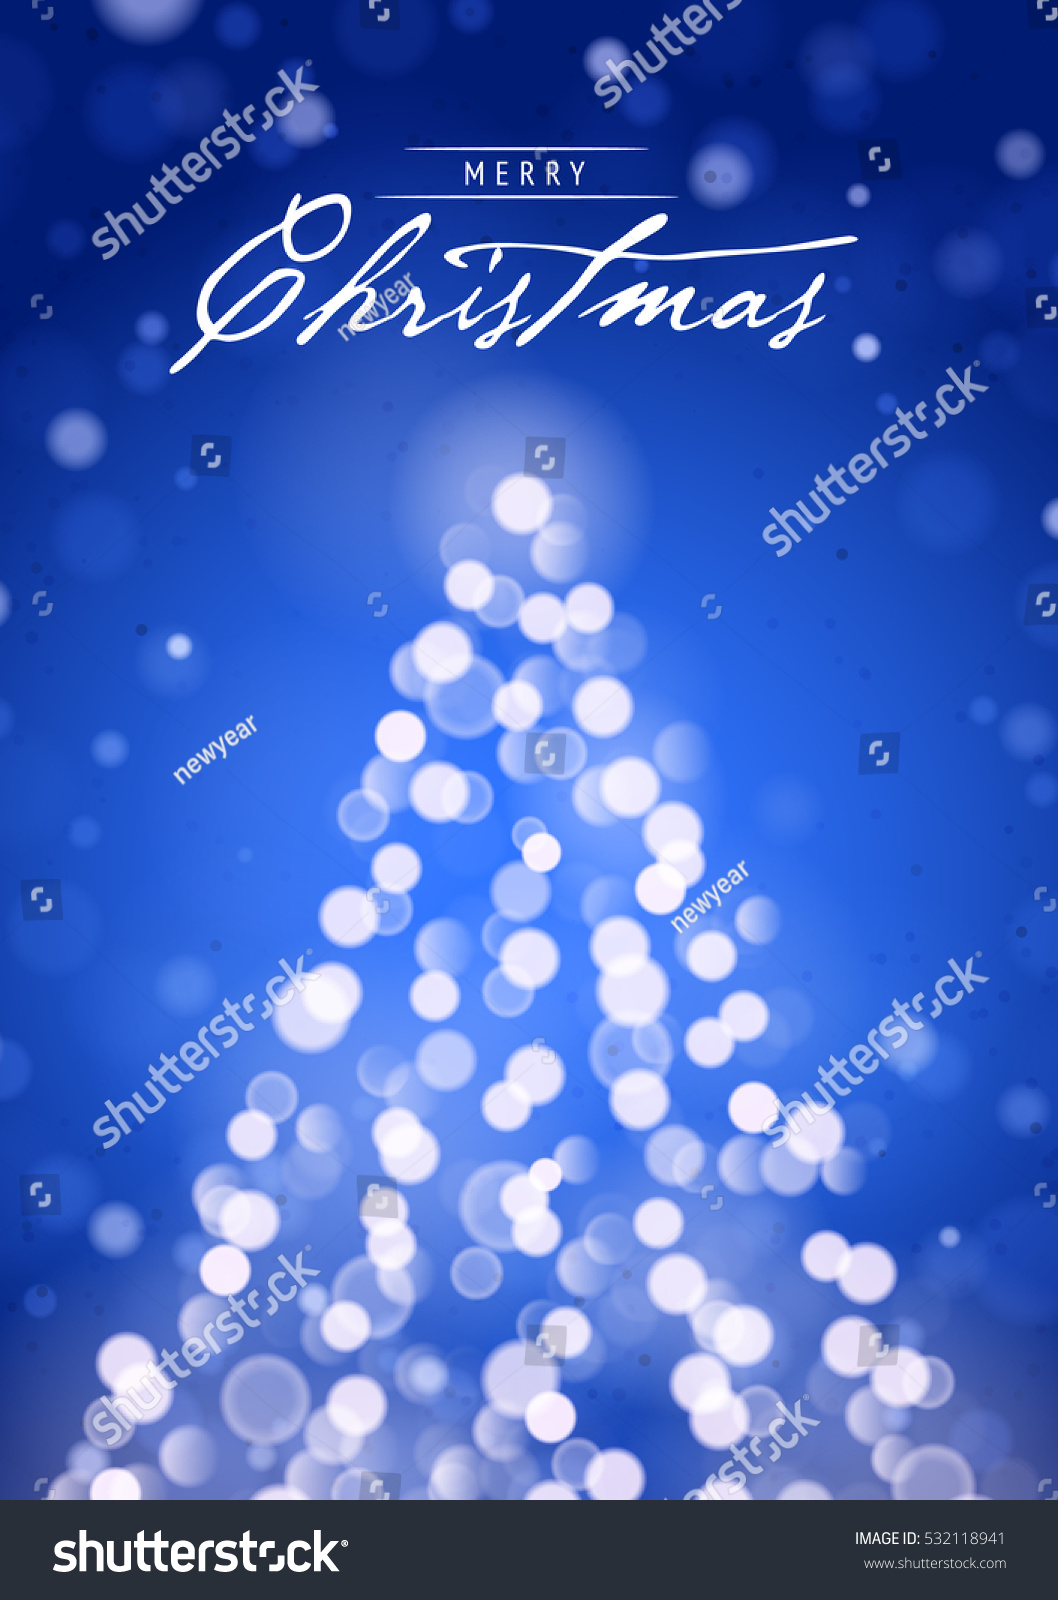 Merry Christmas Greeting Card Blurred Lights Stock Vector Royalty